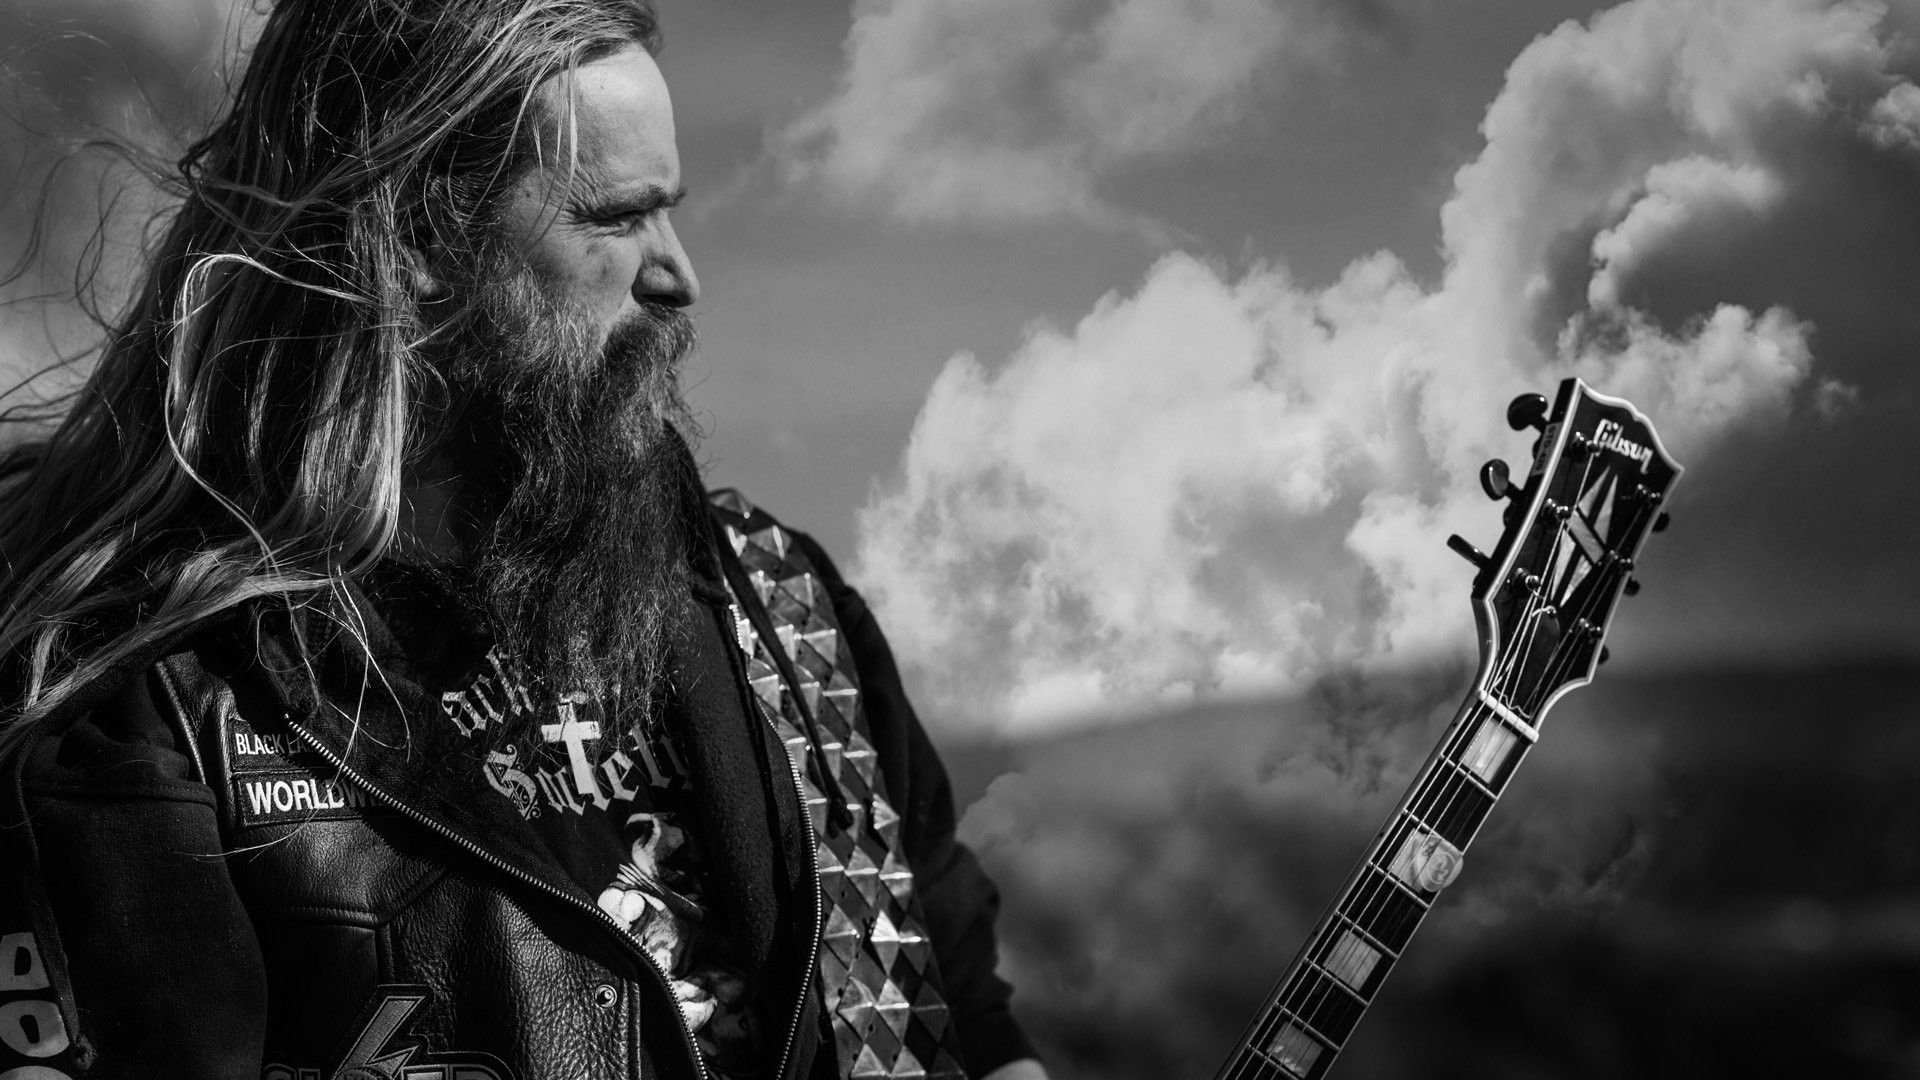 1920x1080 Musik - Black Label Society Gitarre Guitarist Heavy Metal Zakk Wylde  Wallpaper